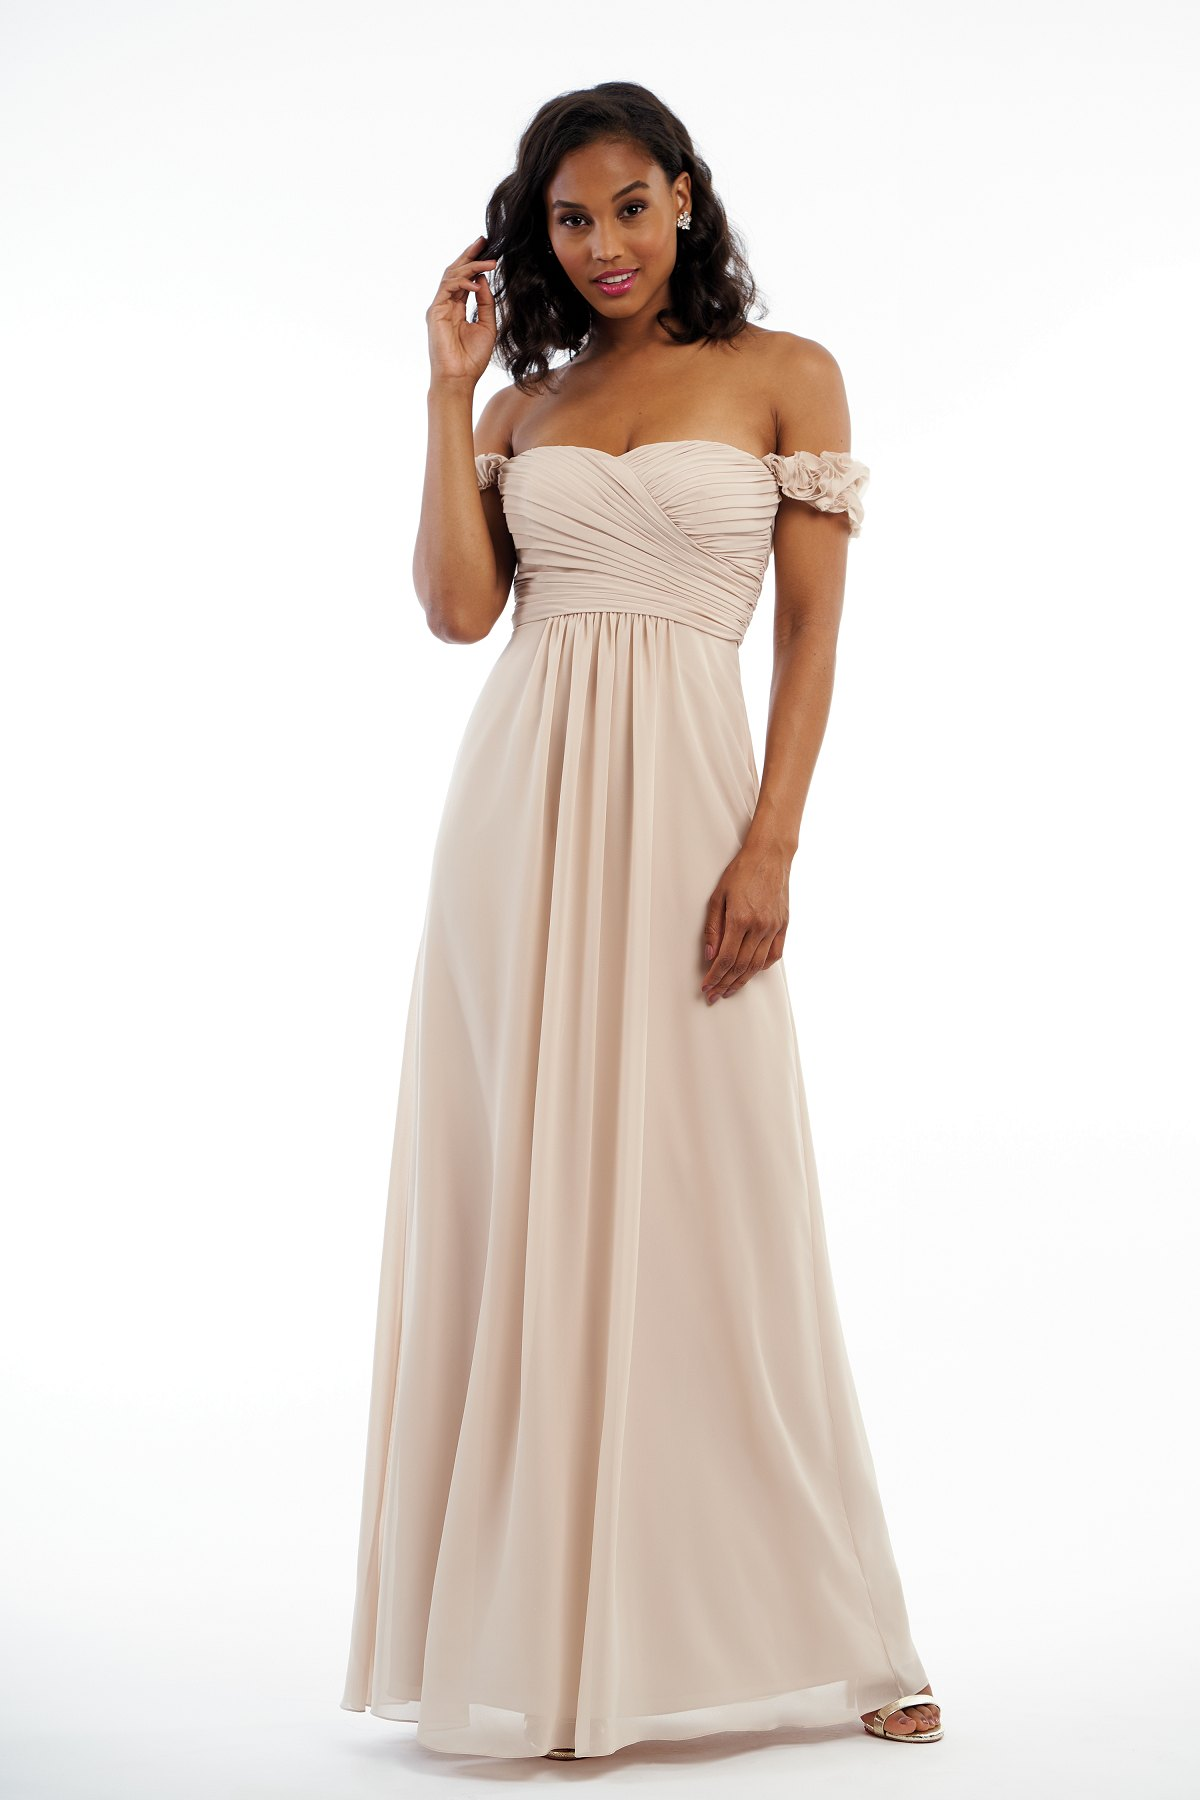 P216004 -  Pretty charlotte chiffon floor length bridesmaid dress with a sweetheart neckline. Textured thick straps that wrap around each arm and detailed gathers throughout the dress to complete the look.    Available in 41 colors